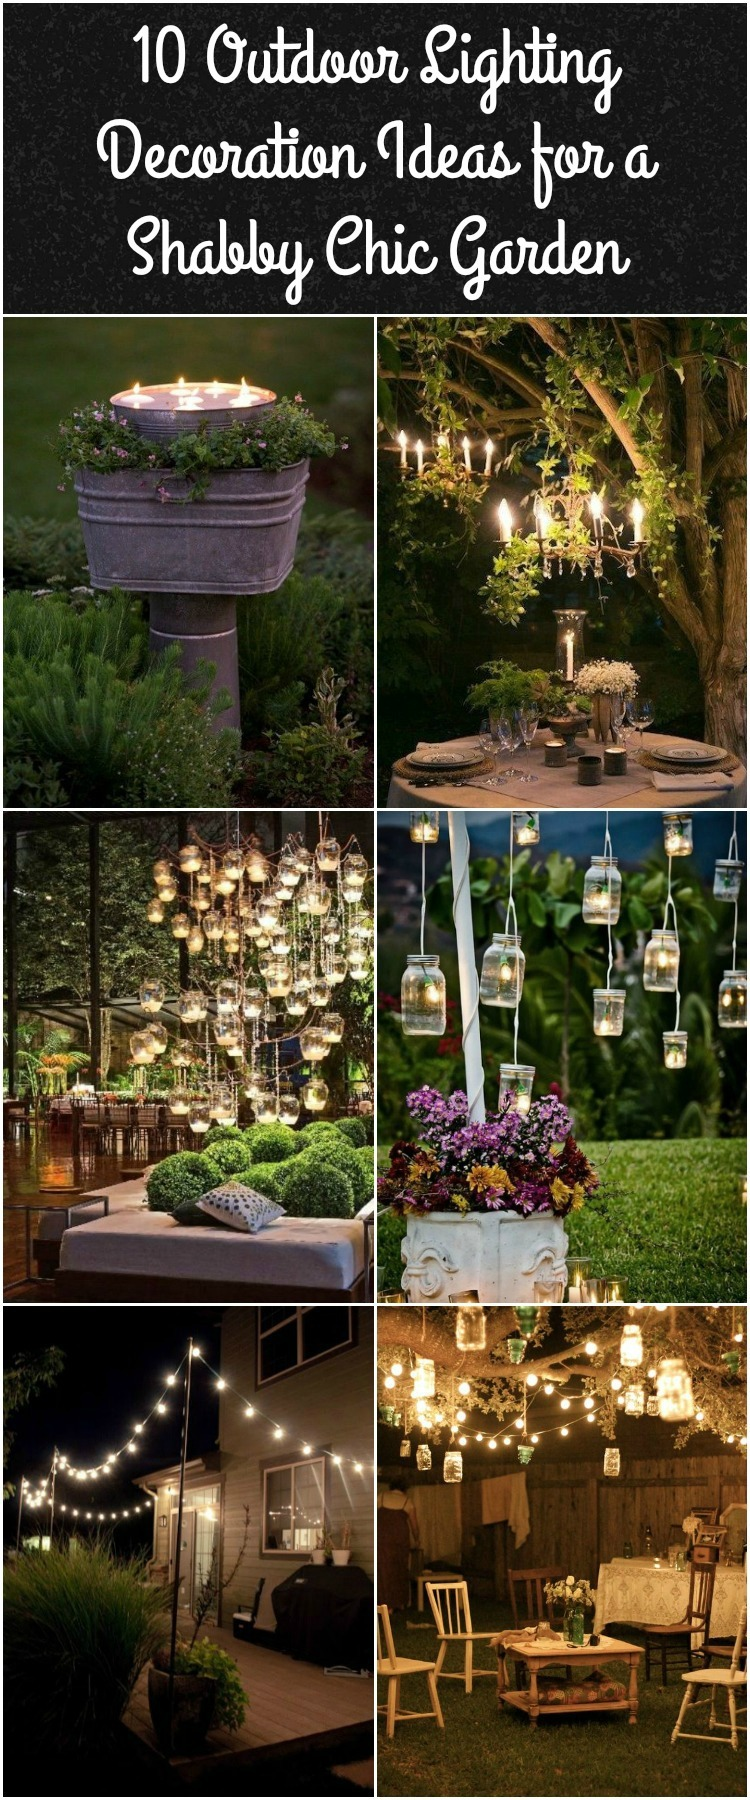 10 Outdoor Lighting Ideas for a Shabby Chic Garden #6 is ... on Chic Patio Ideas id=99872